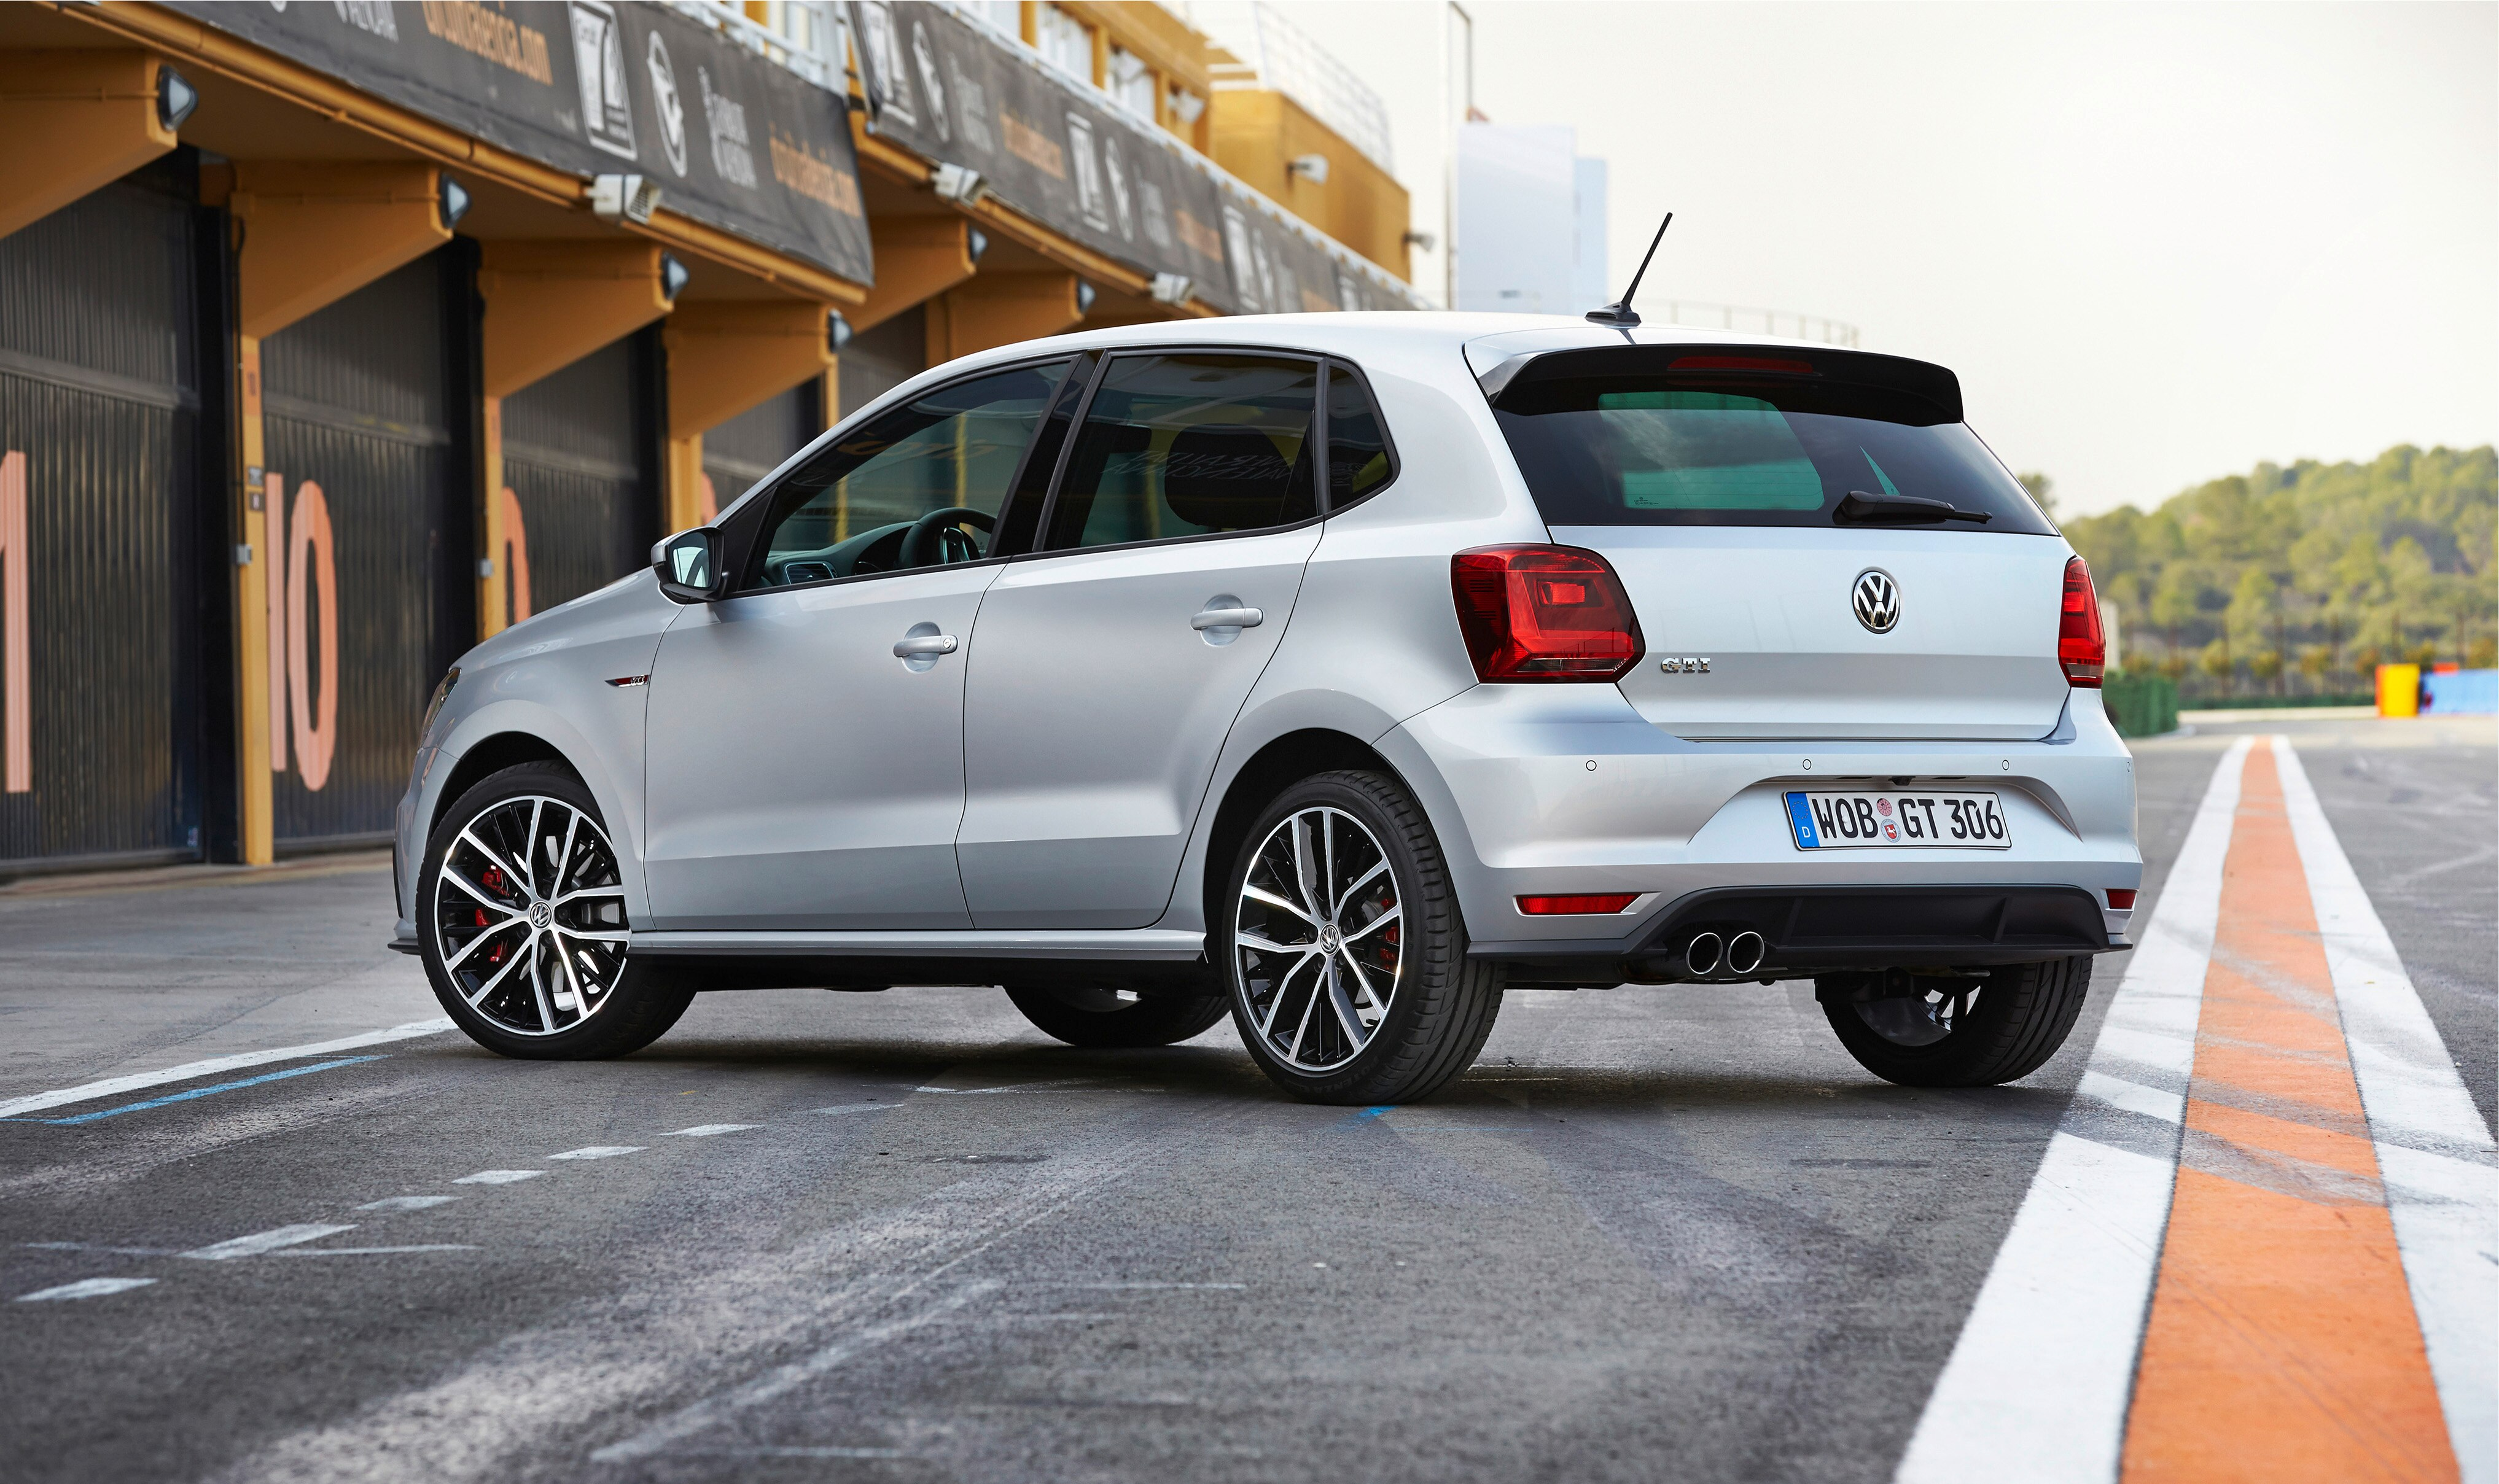 Volkswagen Polo GTI mod specifications